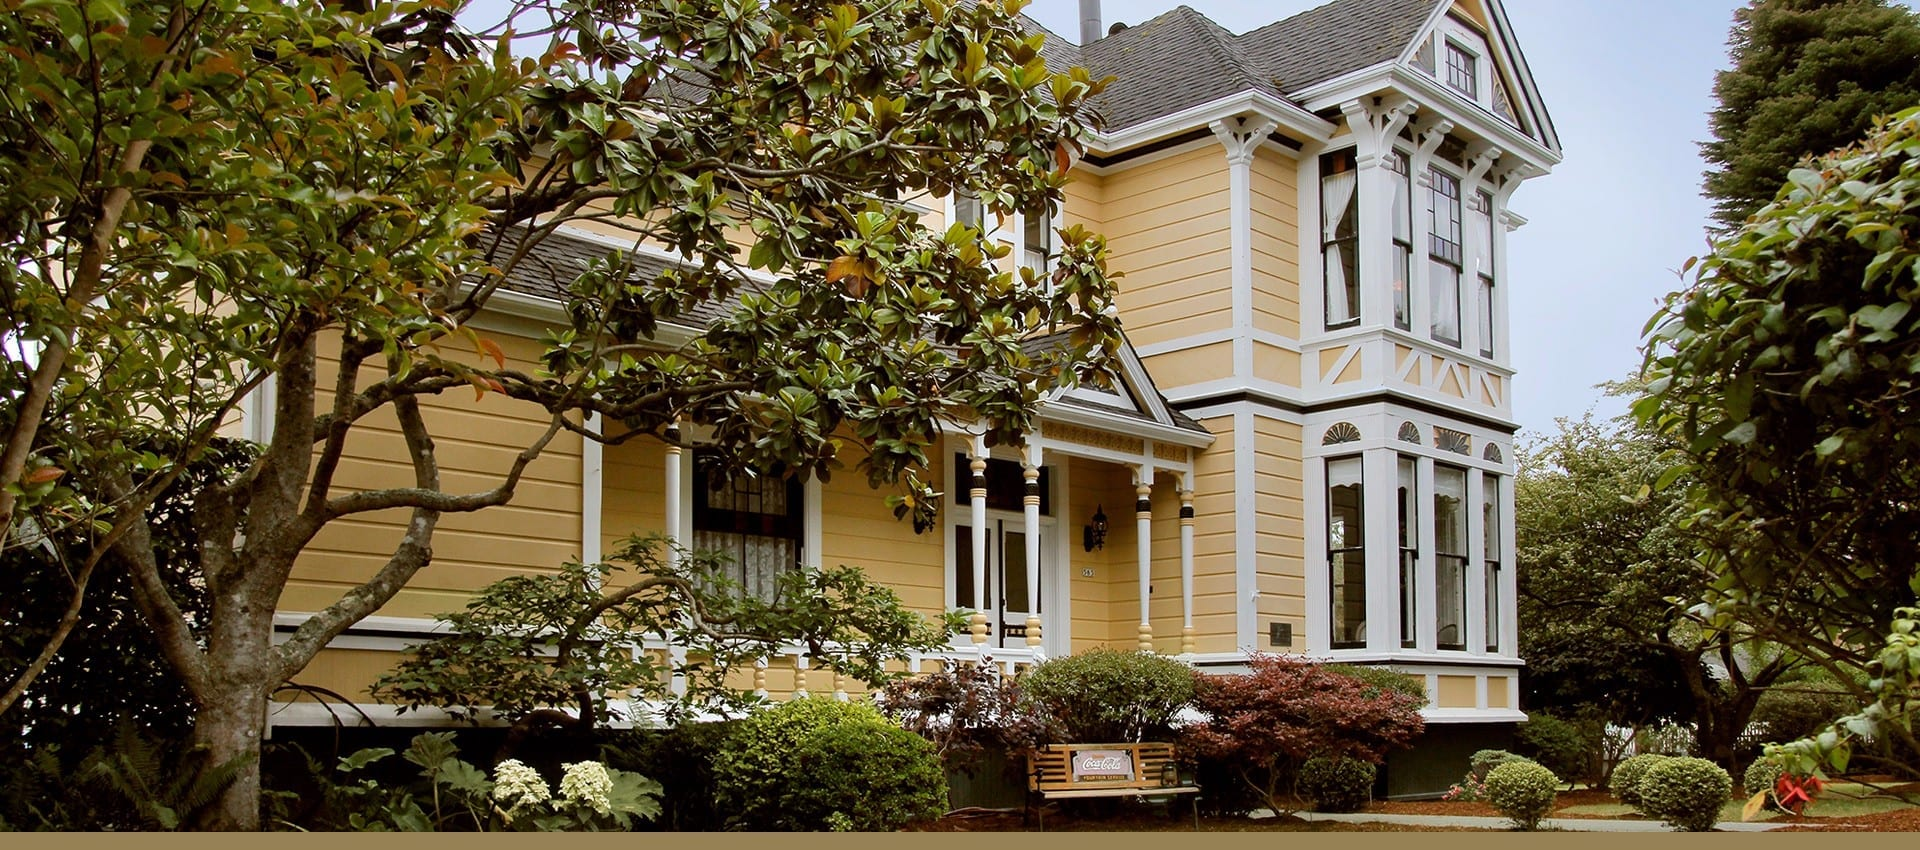 Vacation Rental Near Humboldt Redwoods Park in Ferndale CA